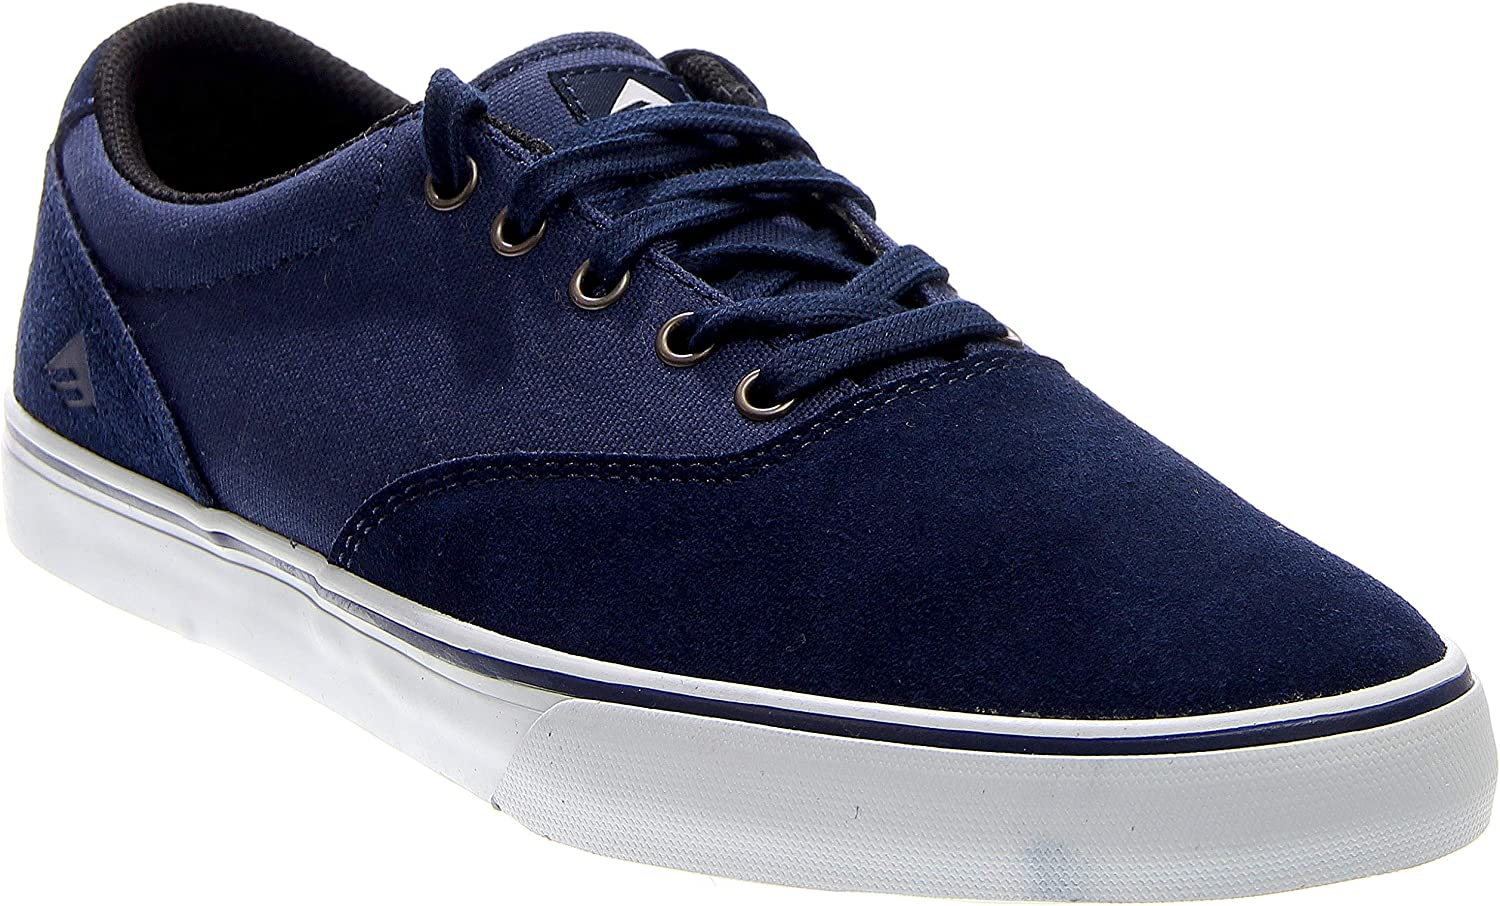 Emerica Mens Provost Slim Vulc Skate Casual Sneakers,